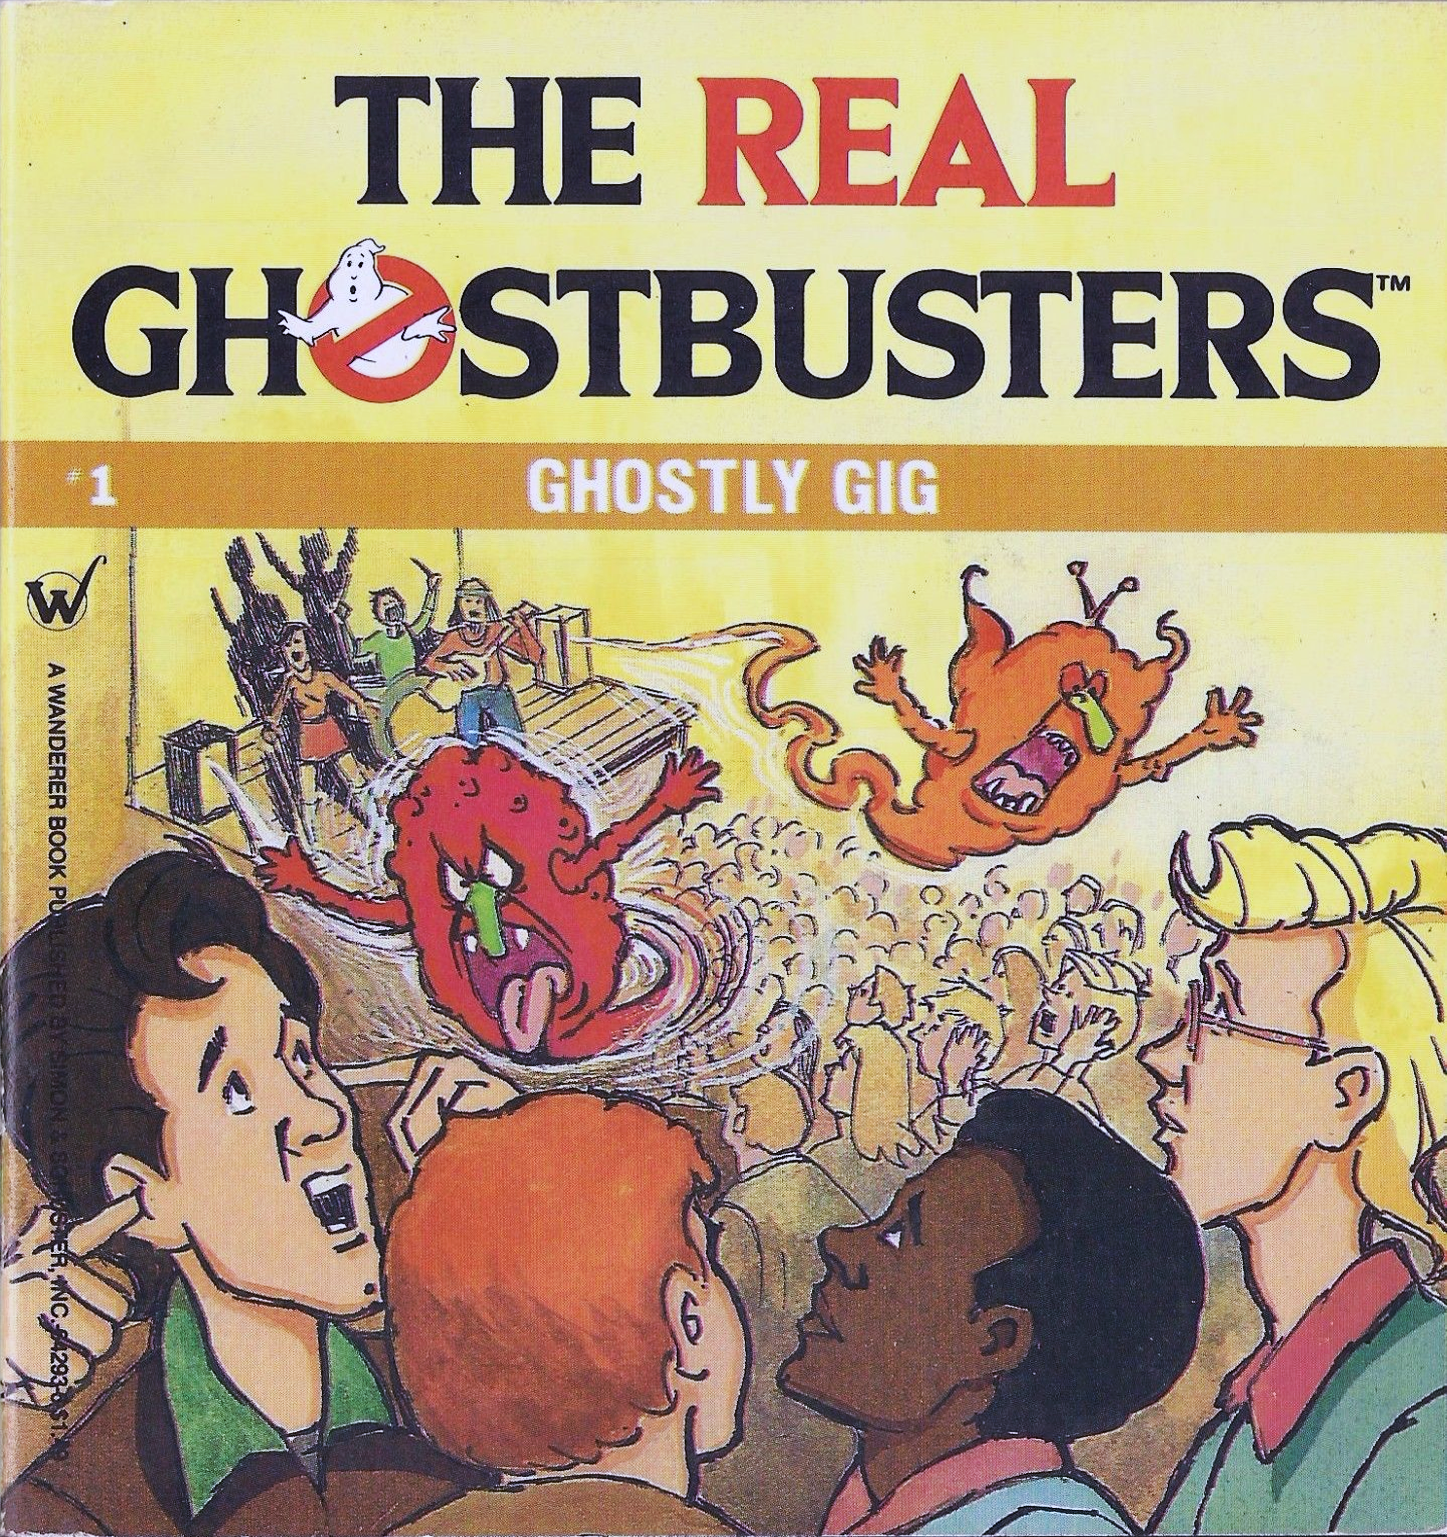 The Real Ghostbusters: Ghostly Gig